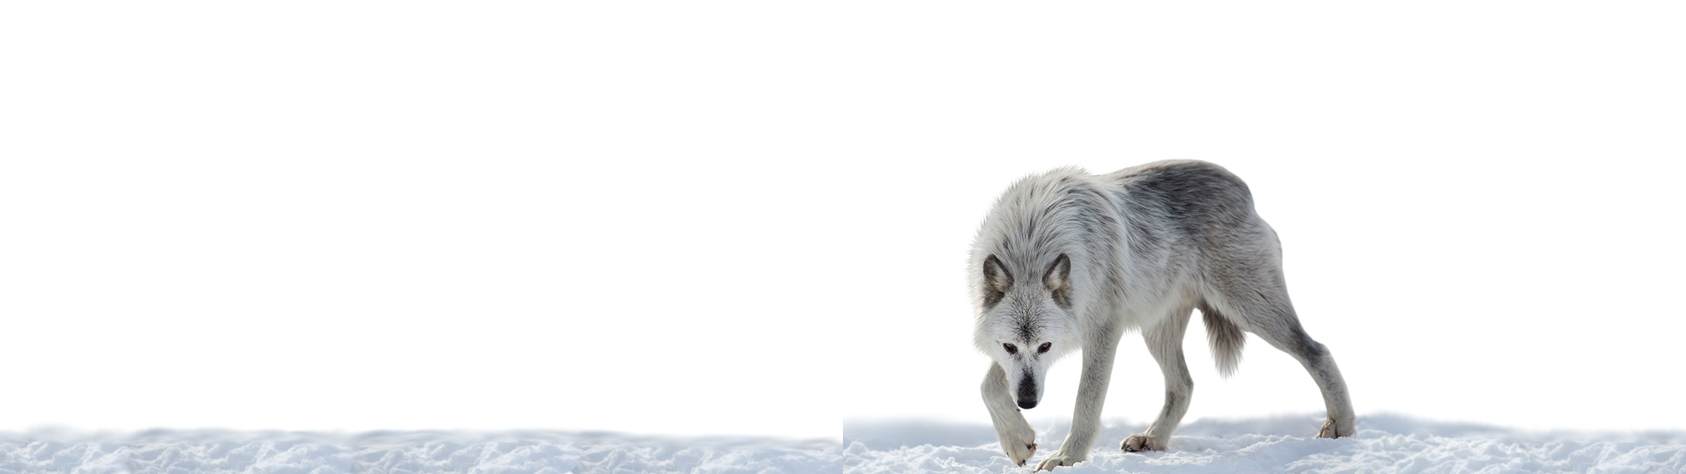 Wolf Wallpaper Inverted (Dual Monitor) 3840x1080 by BowieGirl95 ...